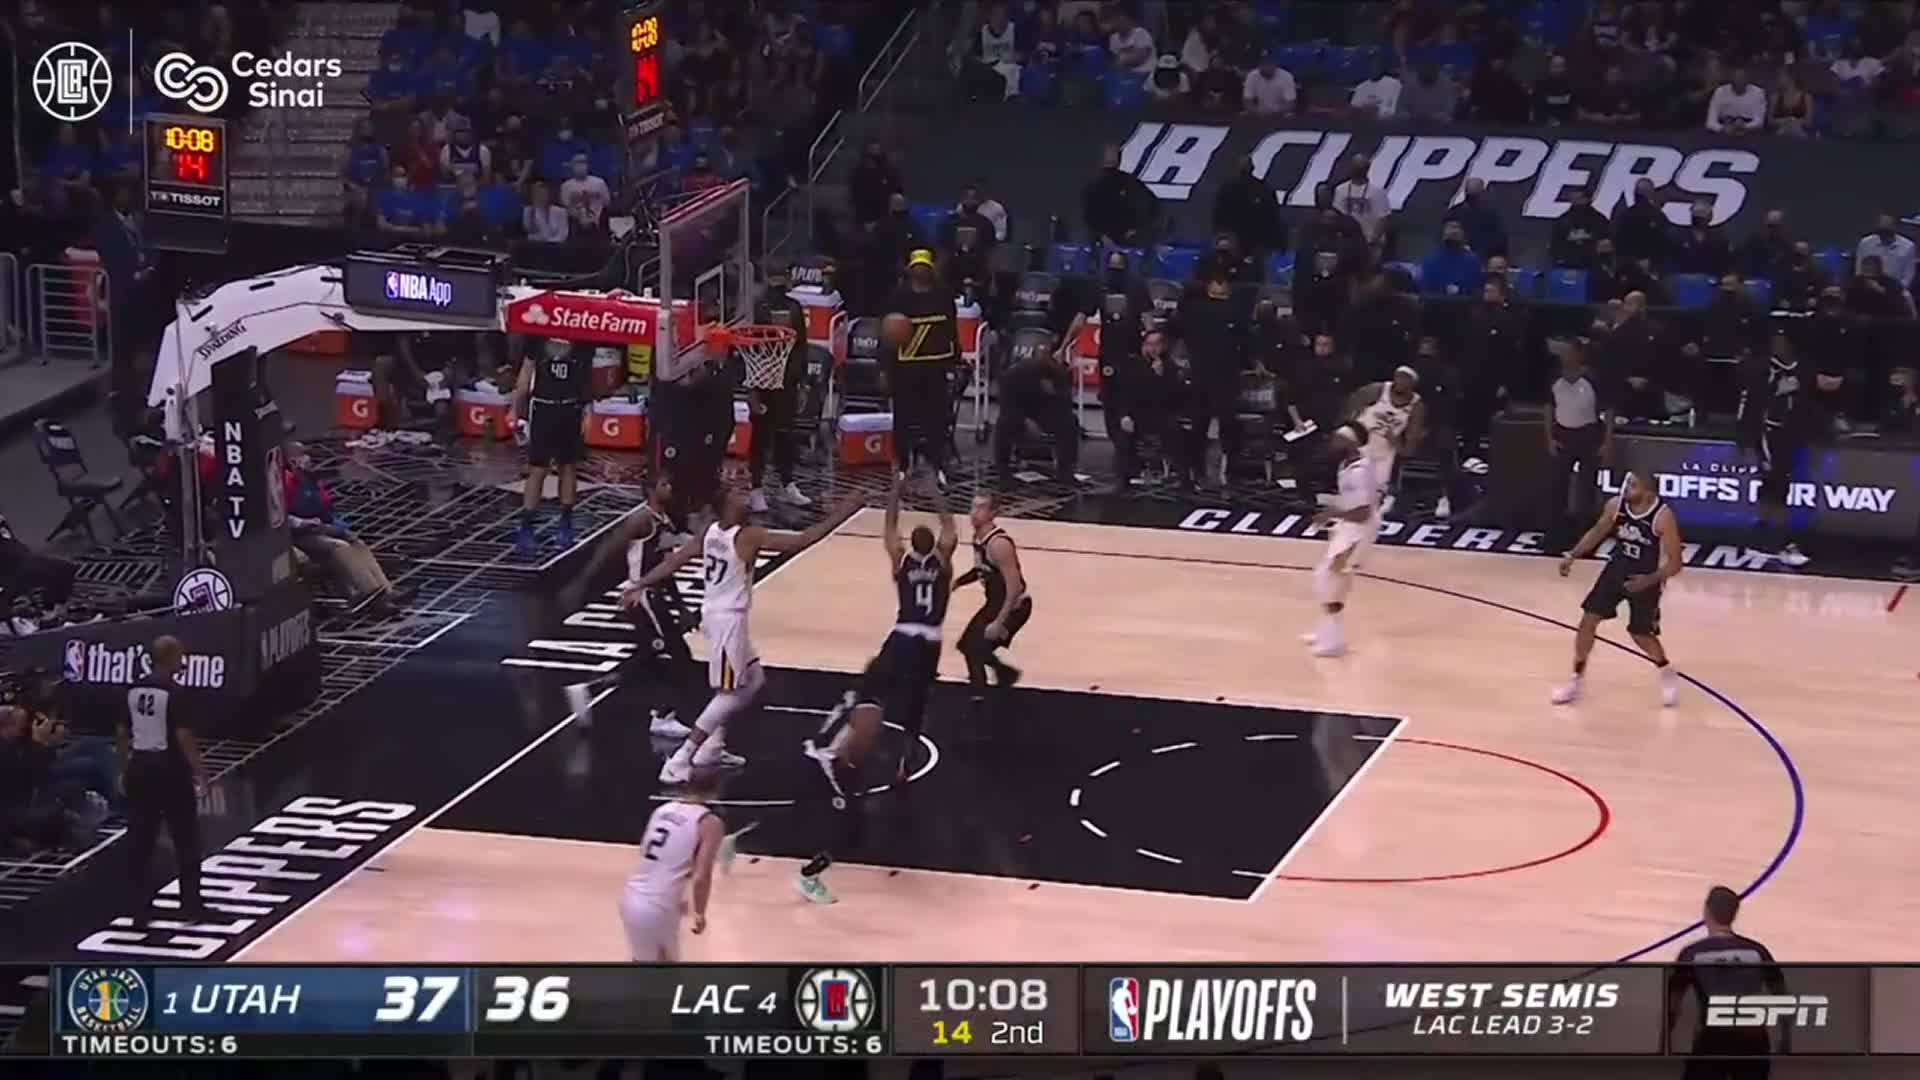 Cedars-Sinai Preventive Play of the Game | Clippers vs Jazz Game 6 (6.18.21)